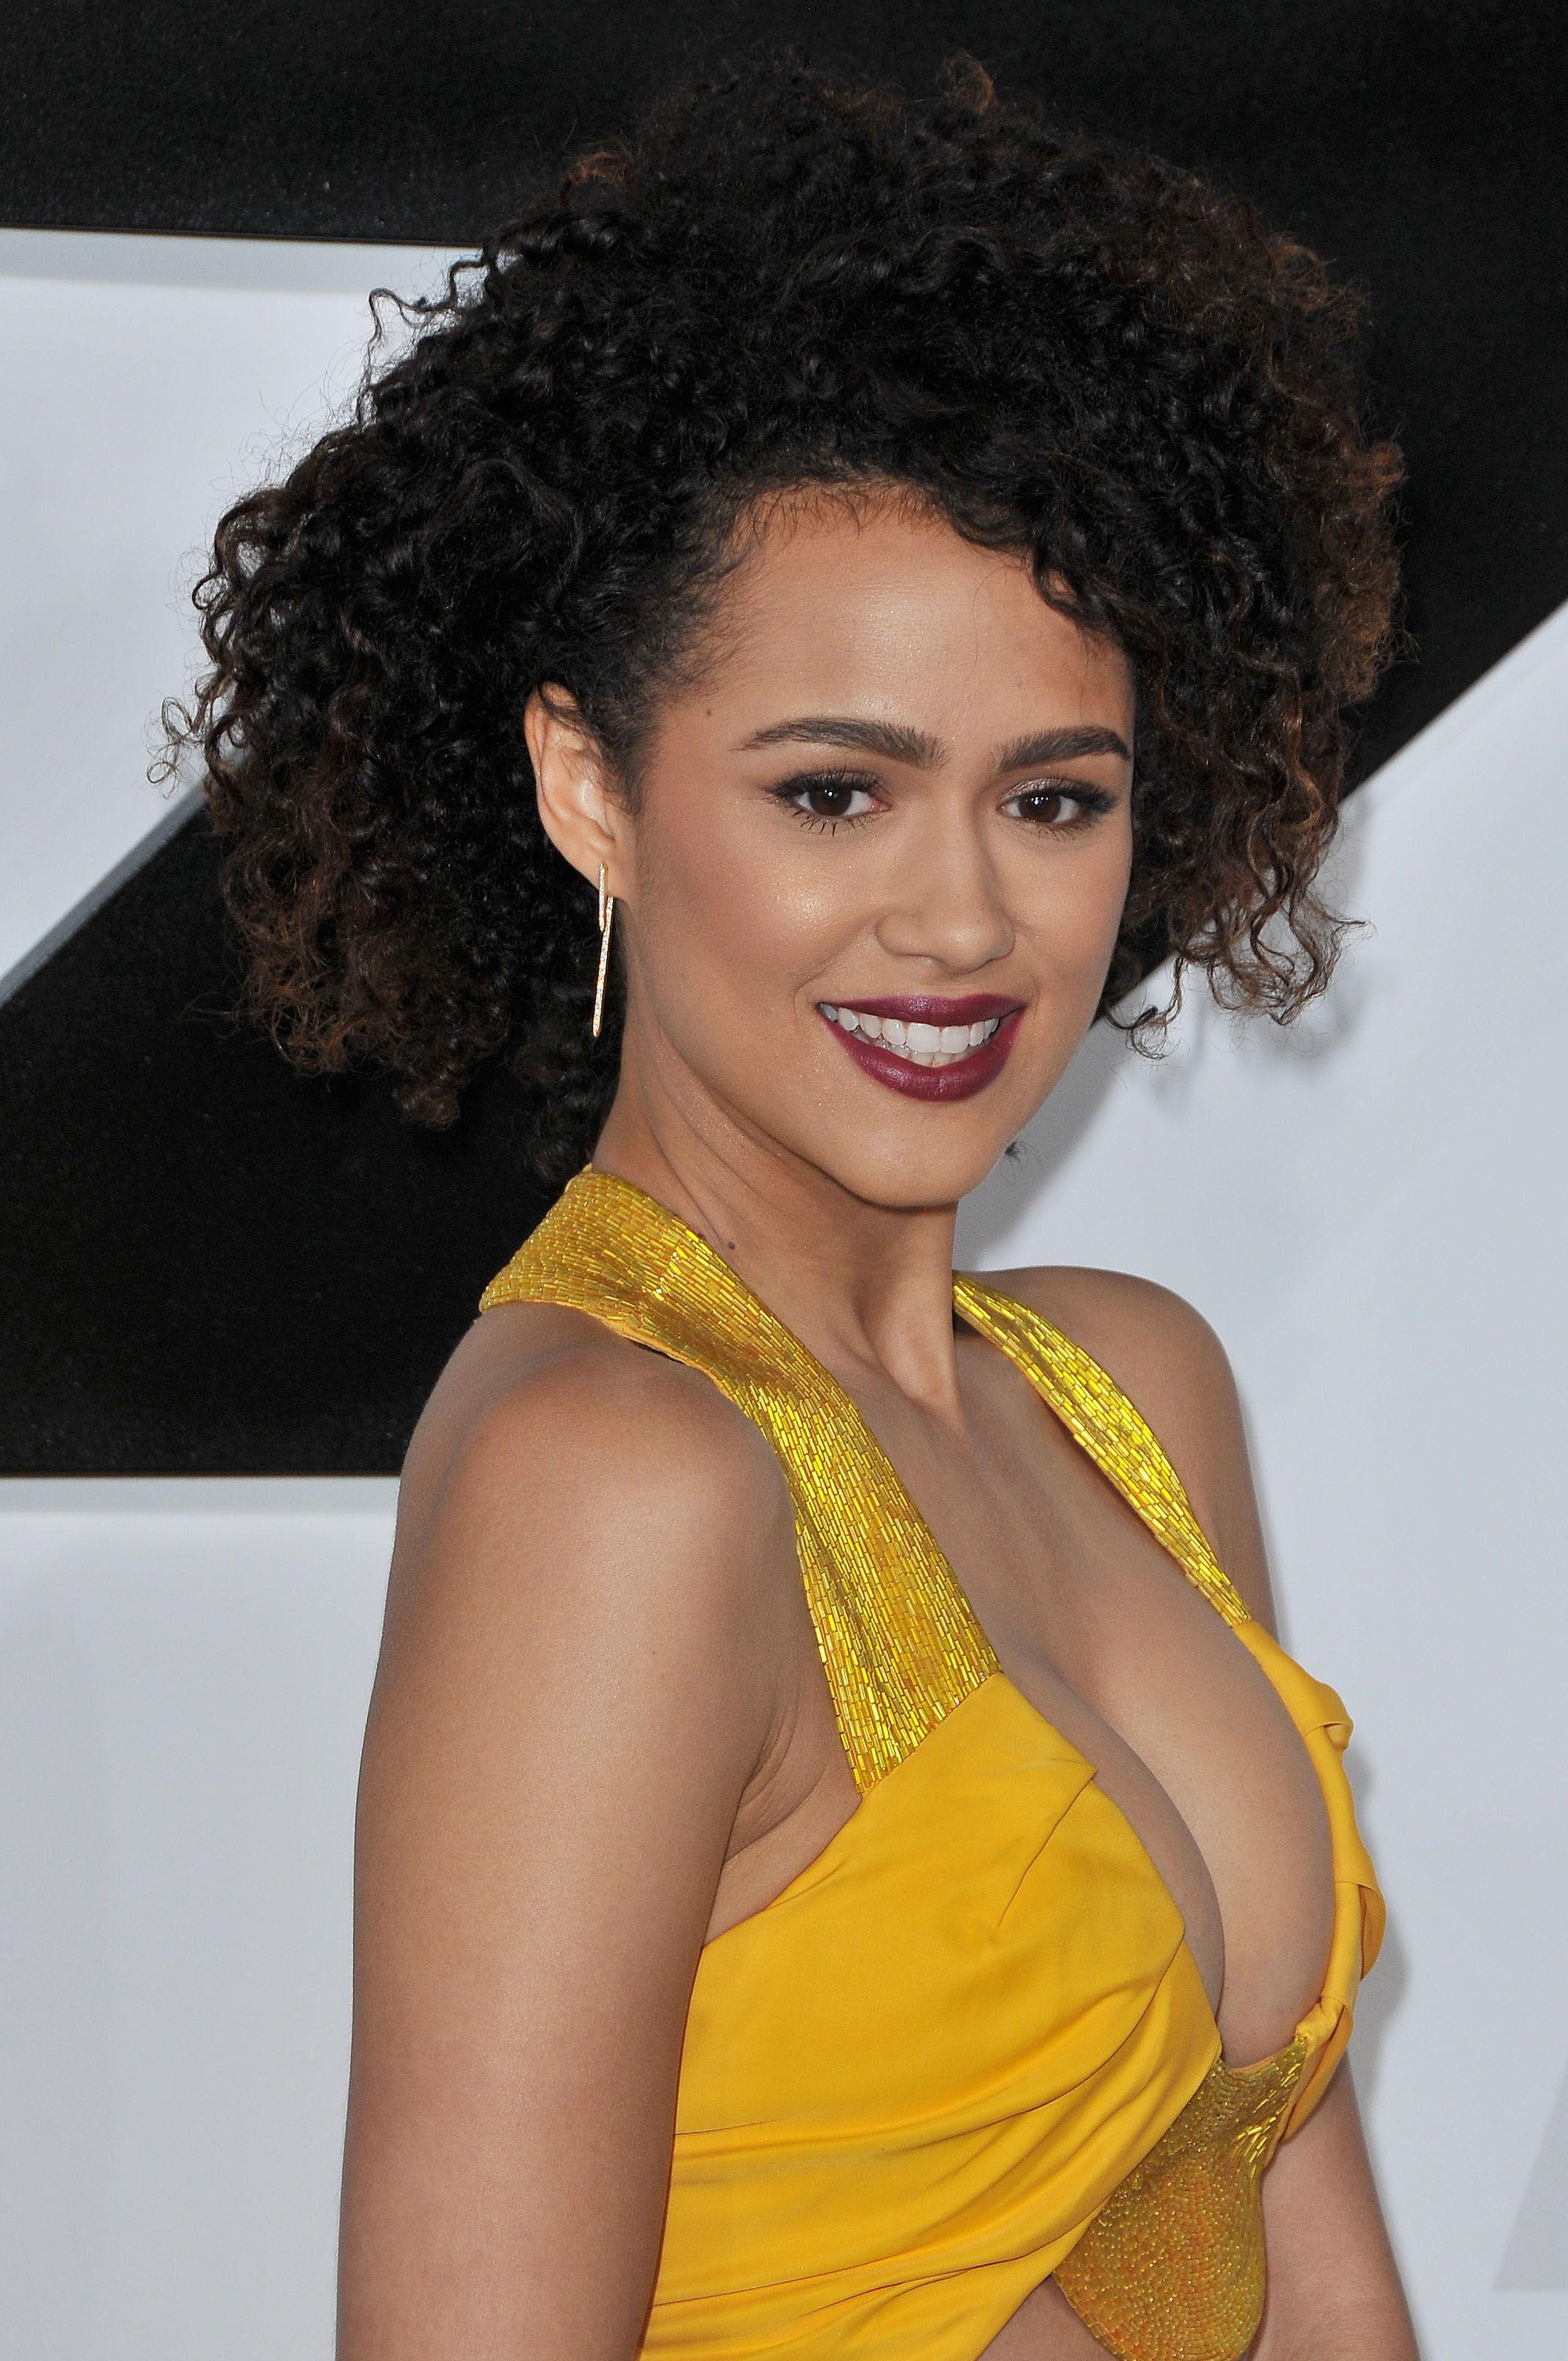 Nathalie Emmanuel (born 1989) Nathalie Emmanuel (born 1989) new images